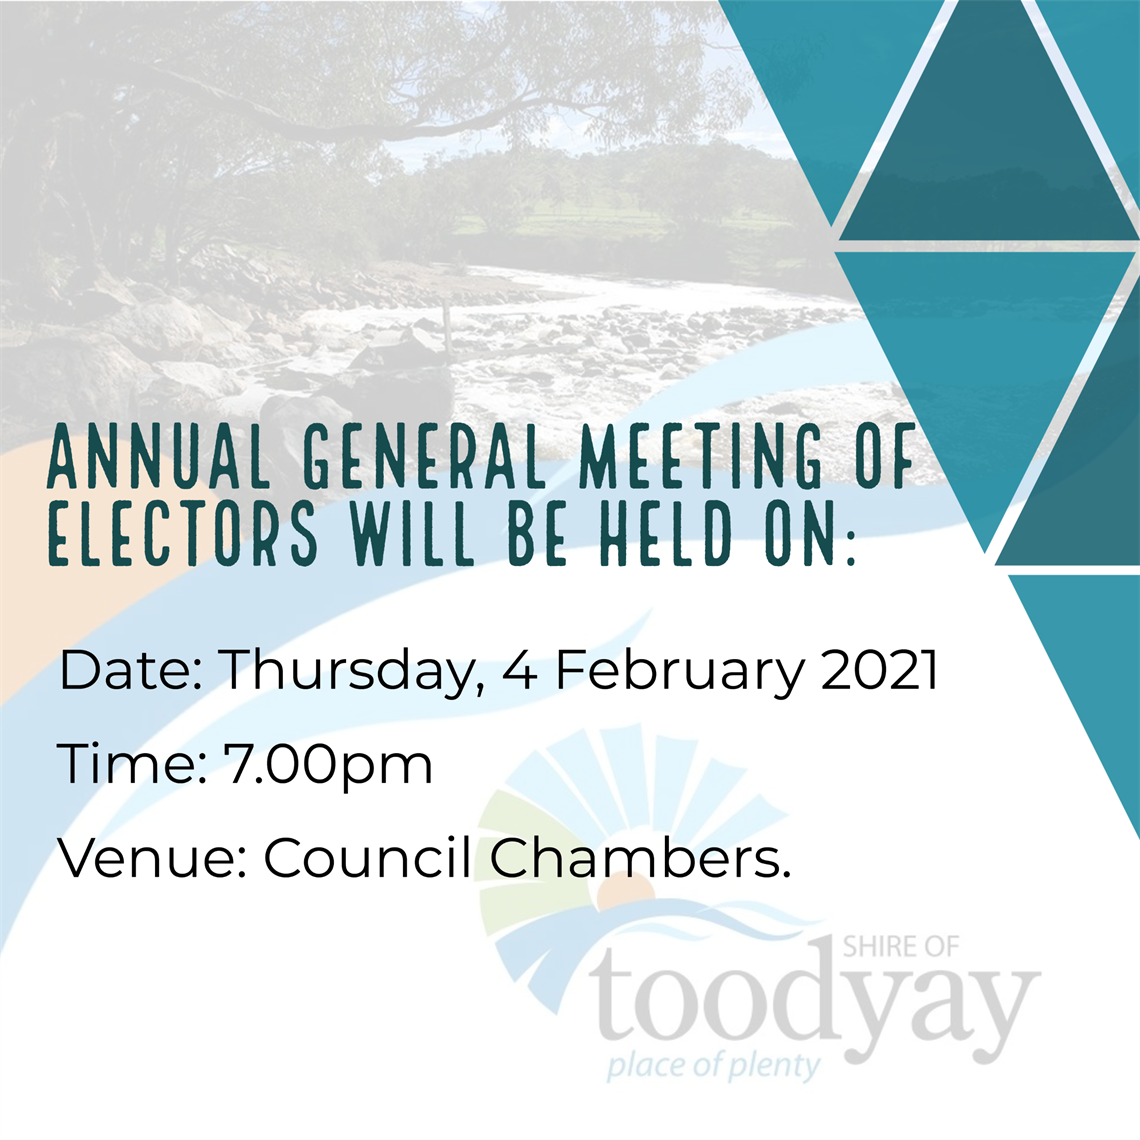 ANNUAL GENERAL MEETING OF ELECTORS 2021